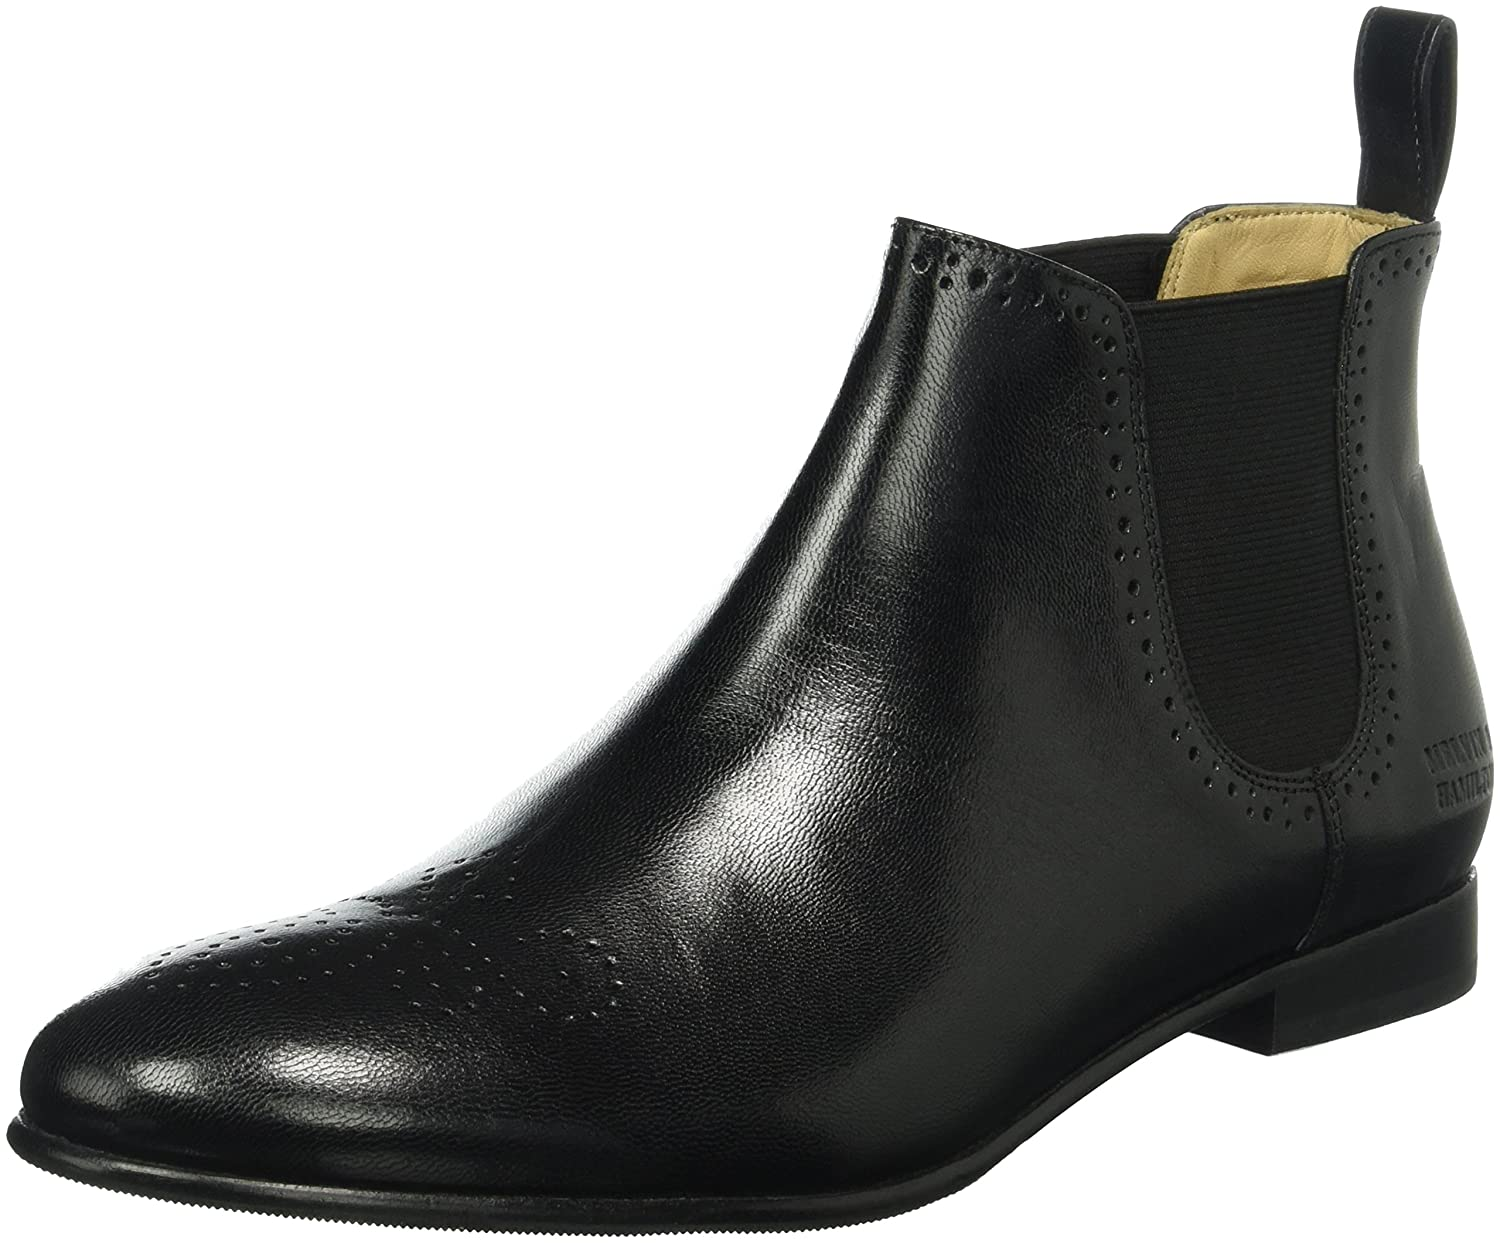 MELVIN & HAMILTON MH HAND MADE schuhe OF CLASS Damen Sally 16 Chelsea Stiefel